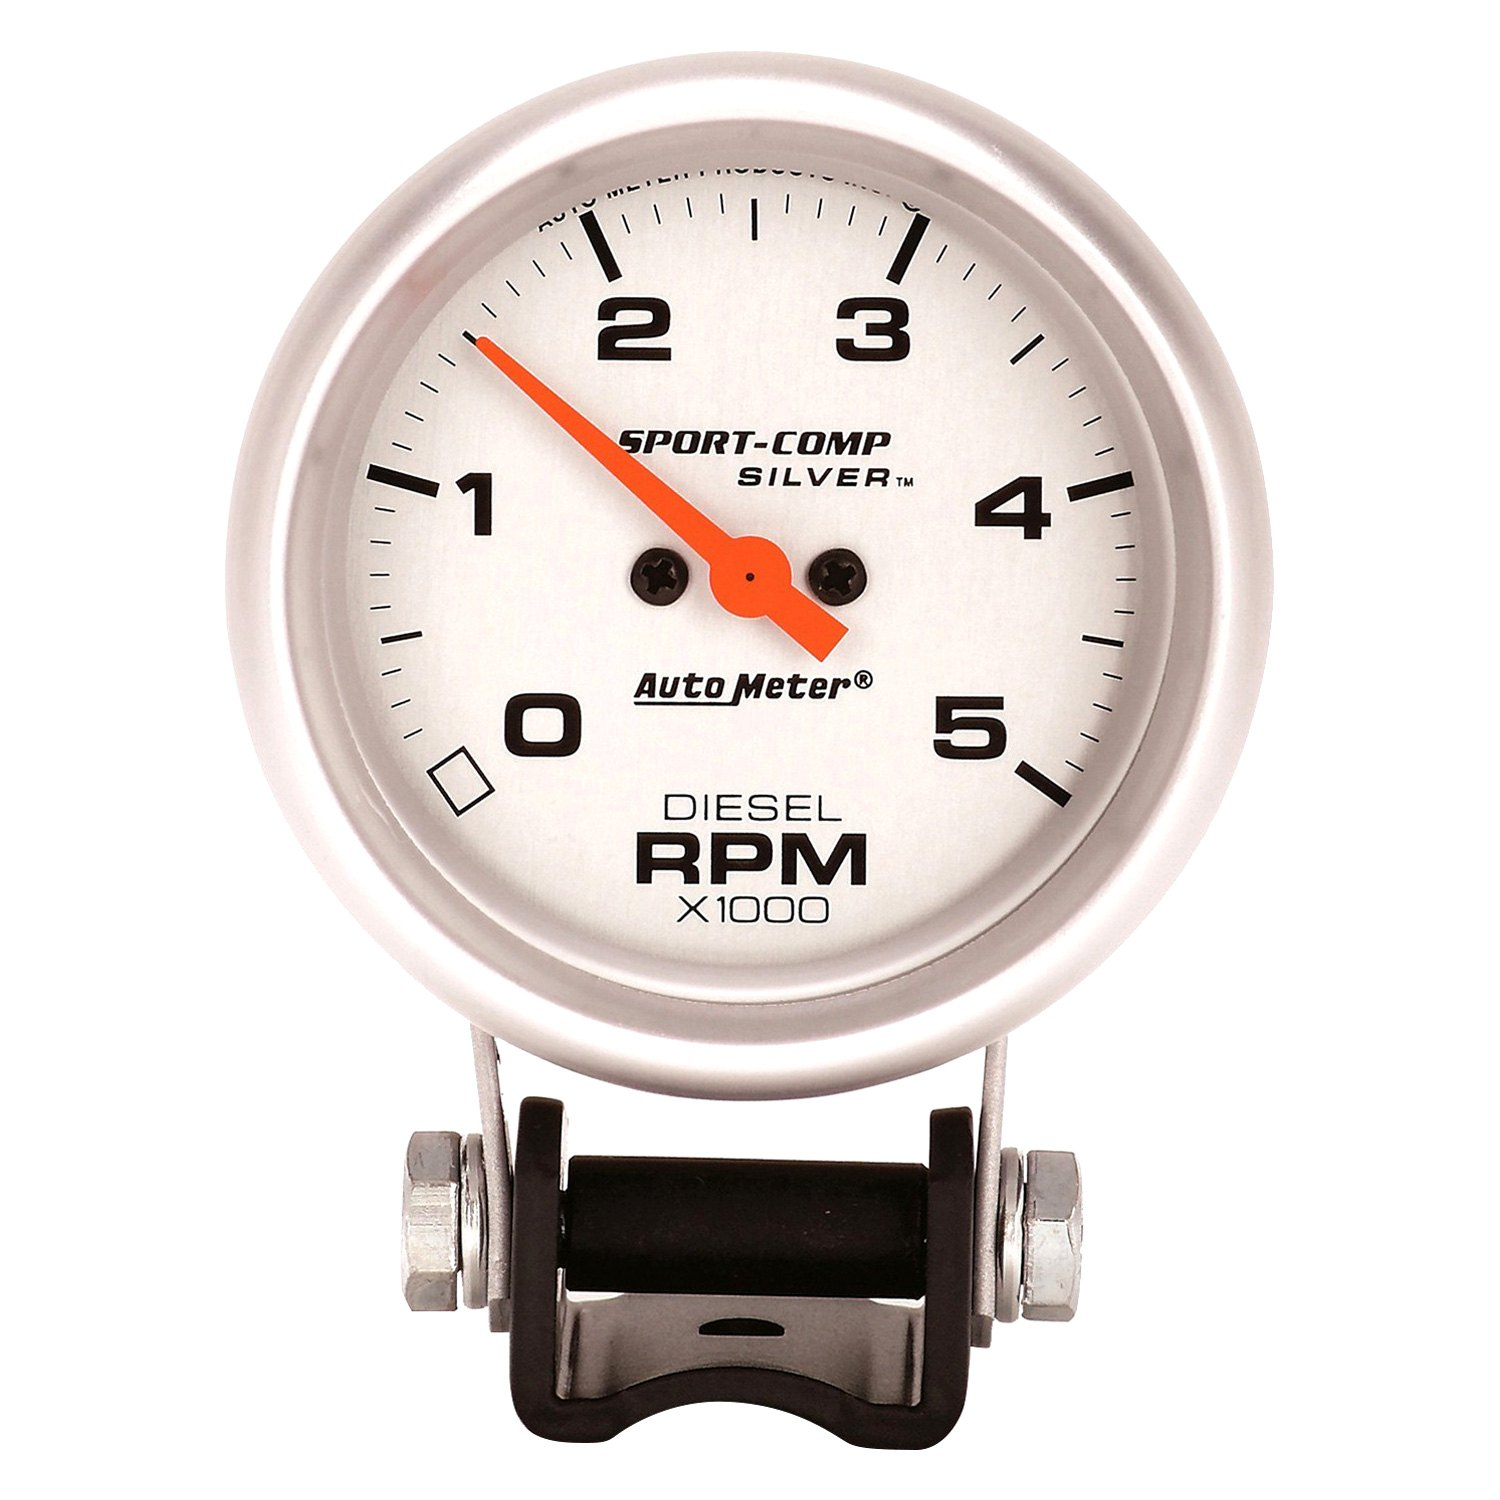 hight resolution of rpmauto meter ultra lite series 2 5 8 auto